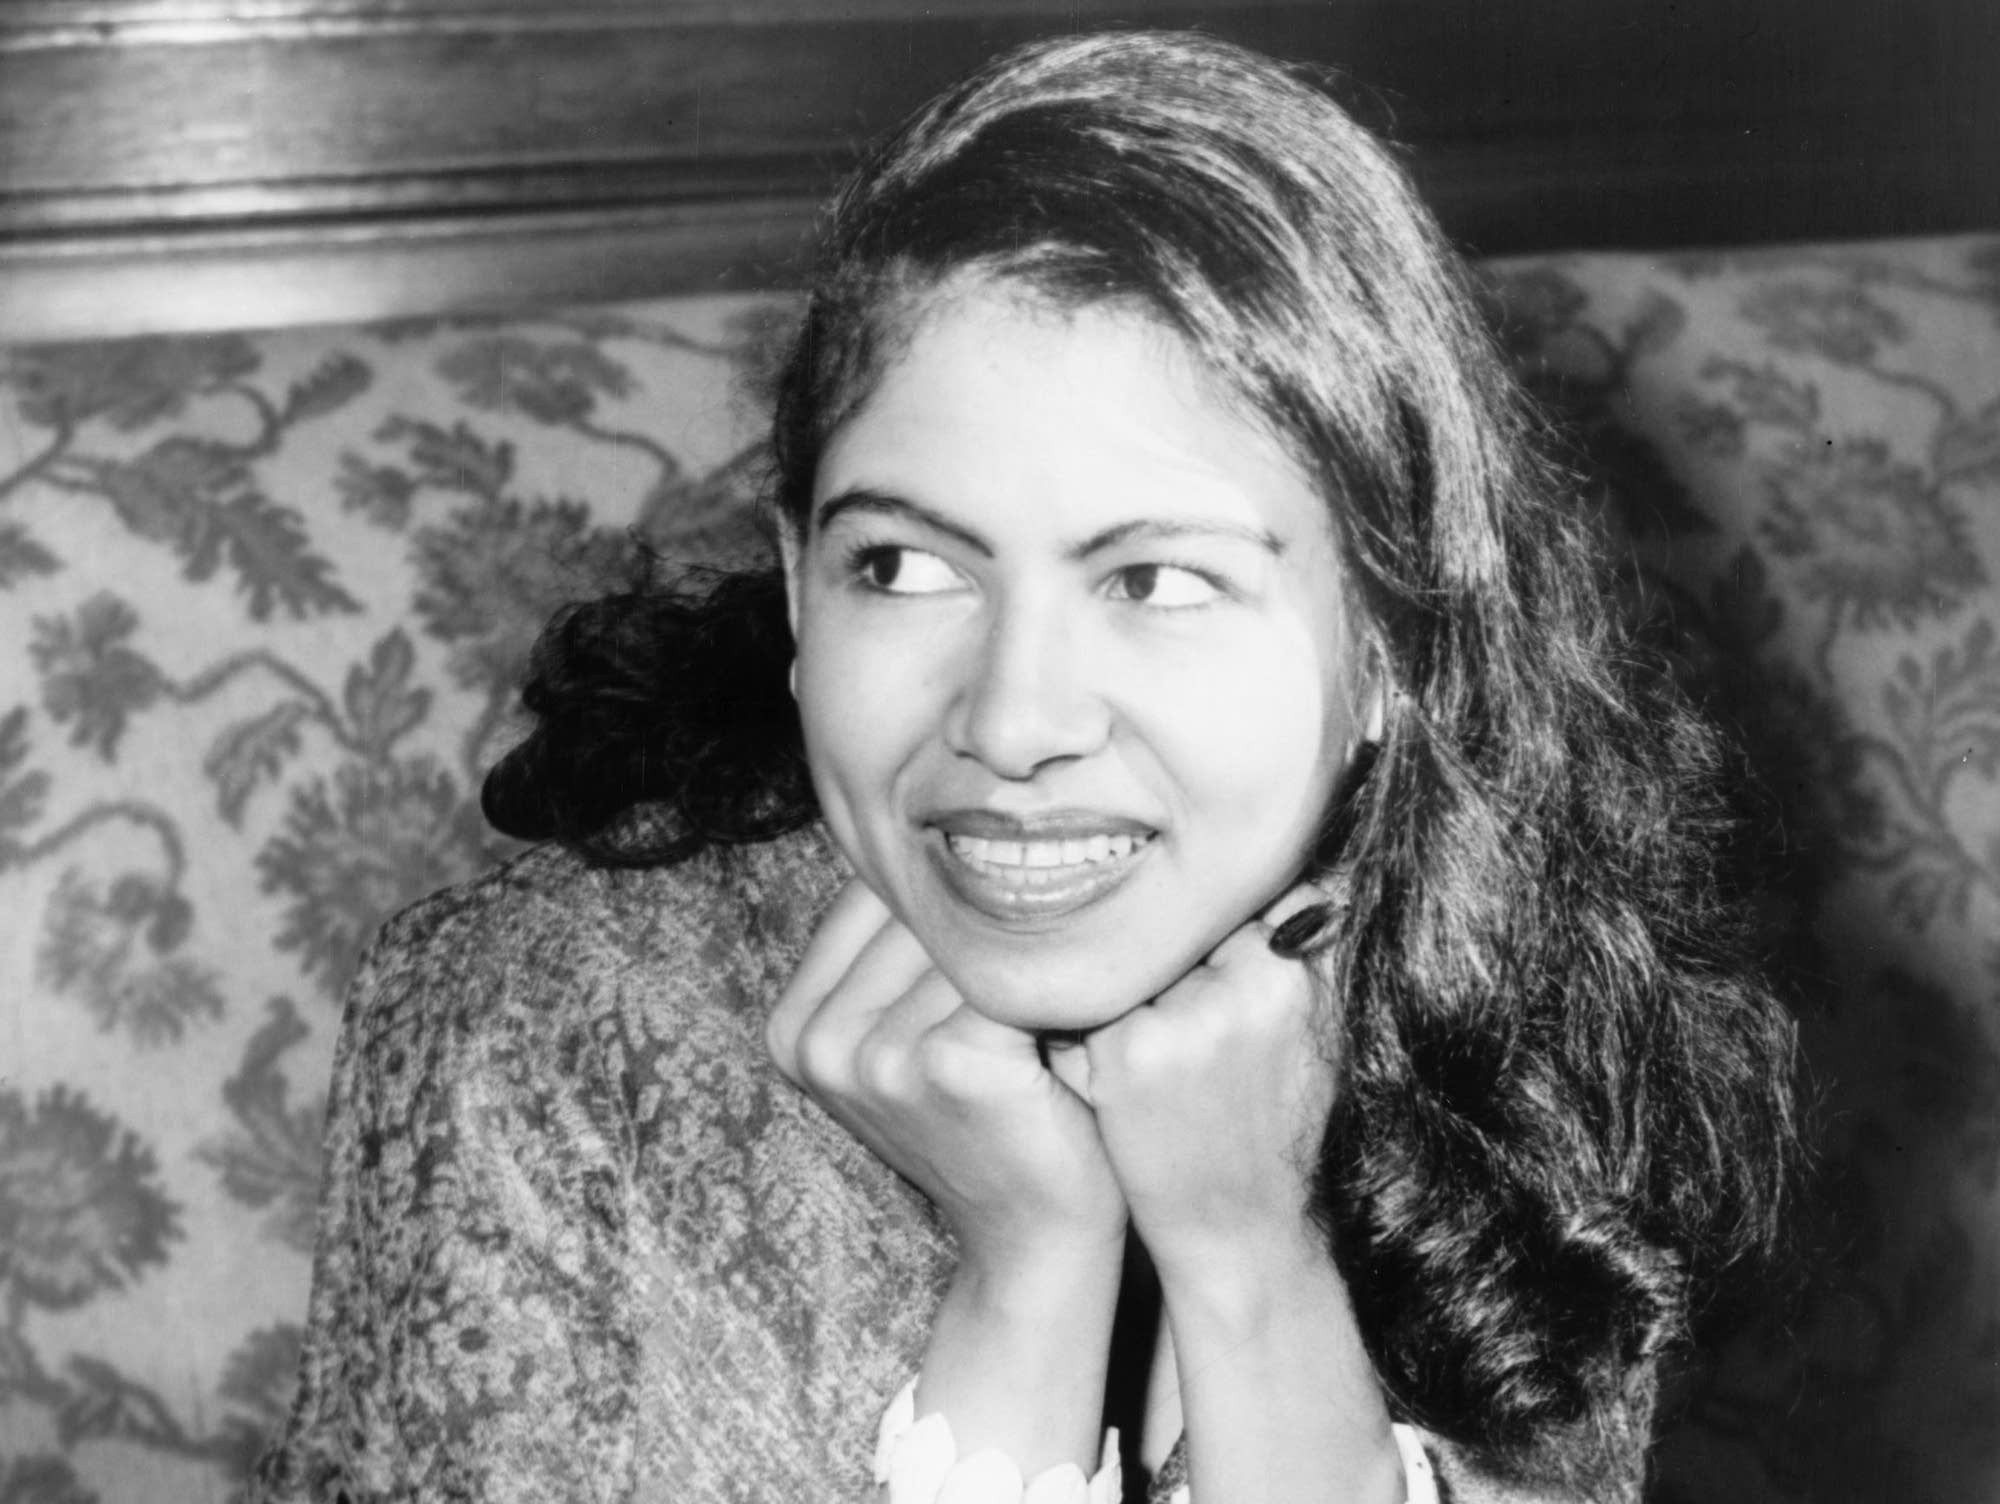 Philippa Schuyler, composer and pianist